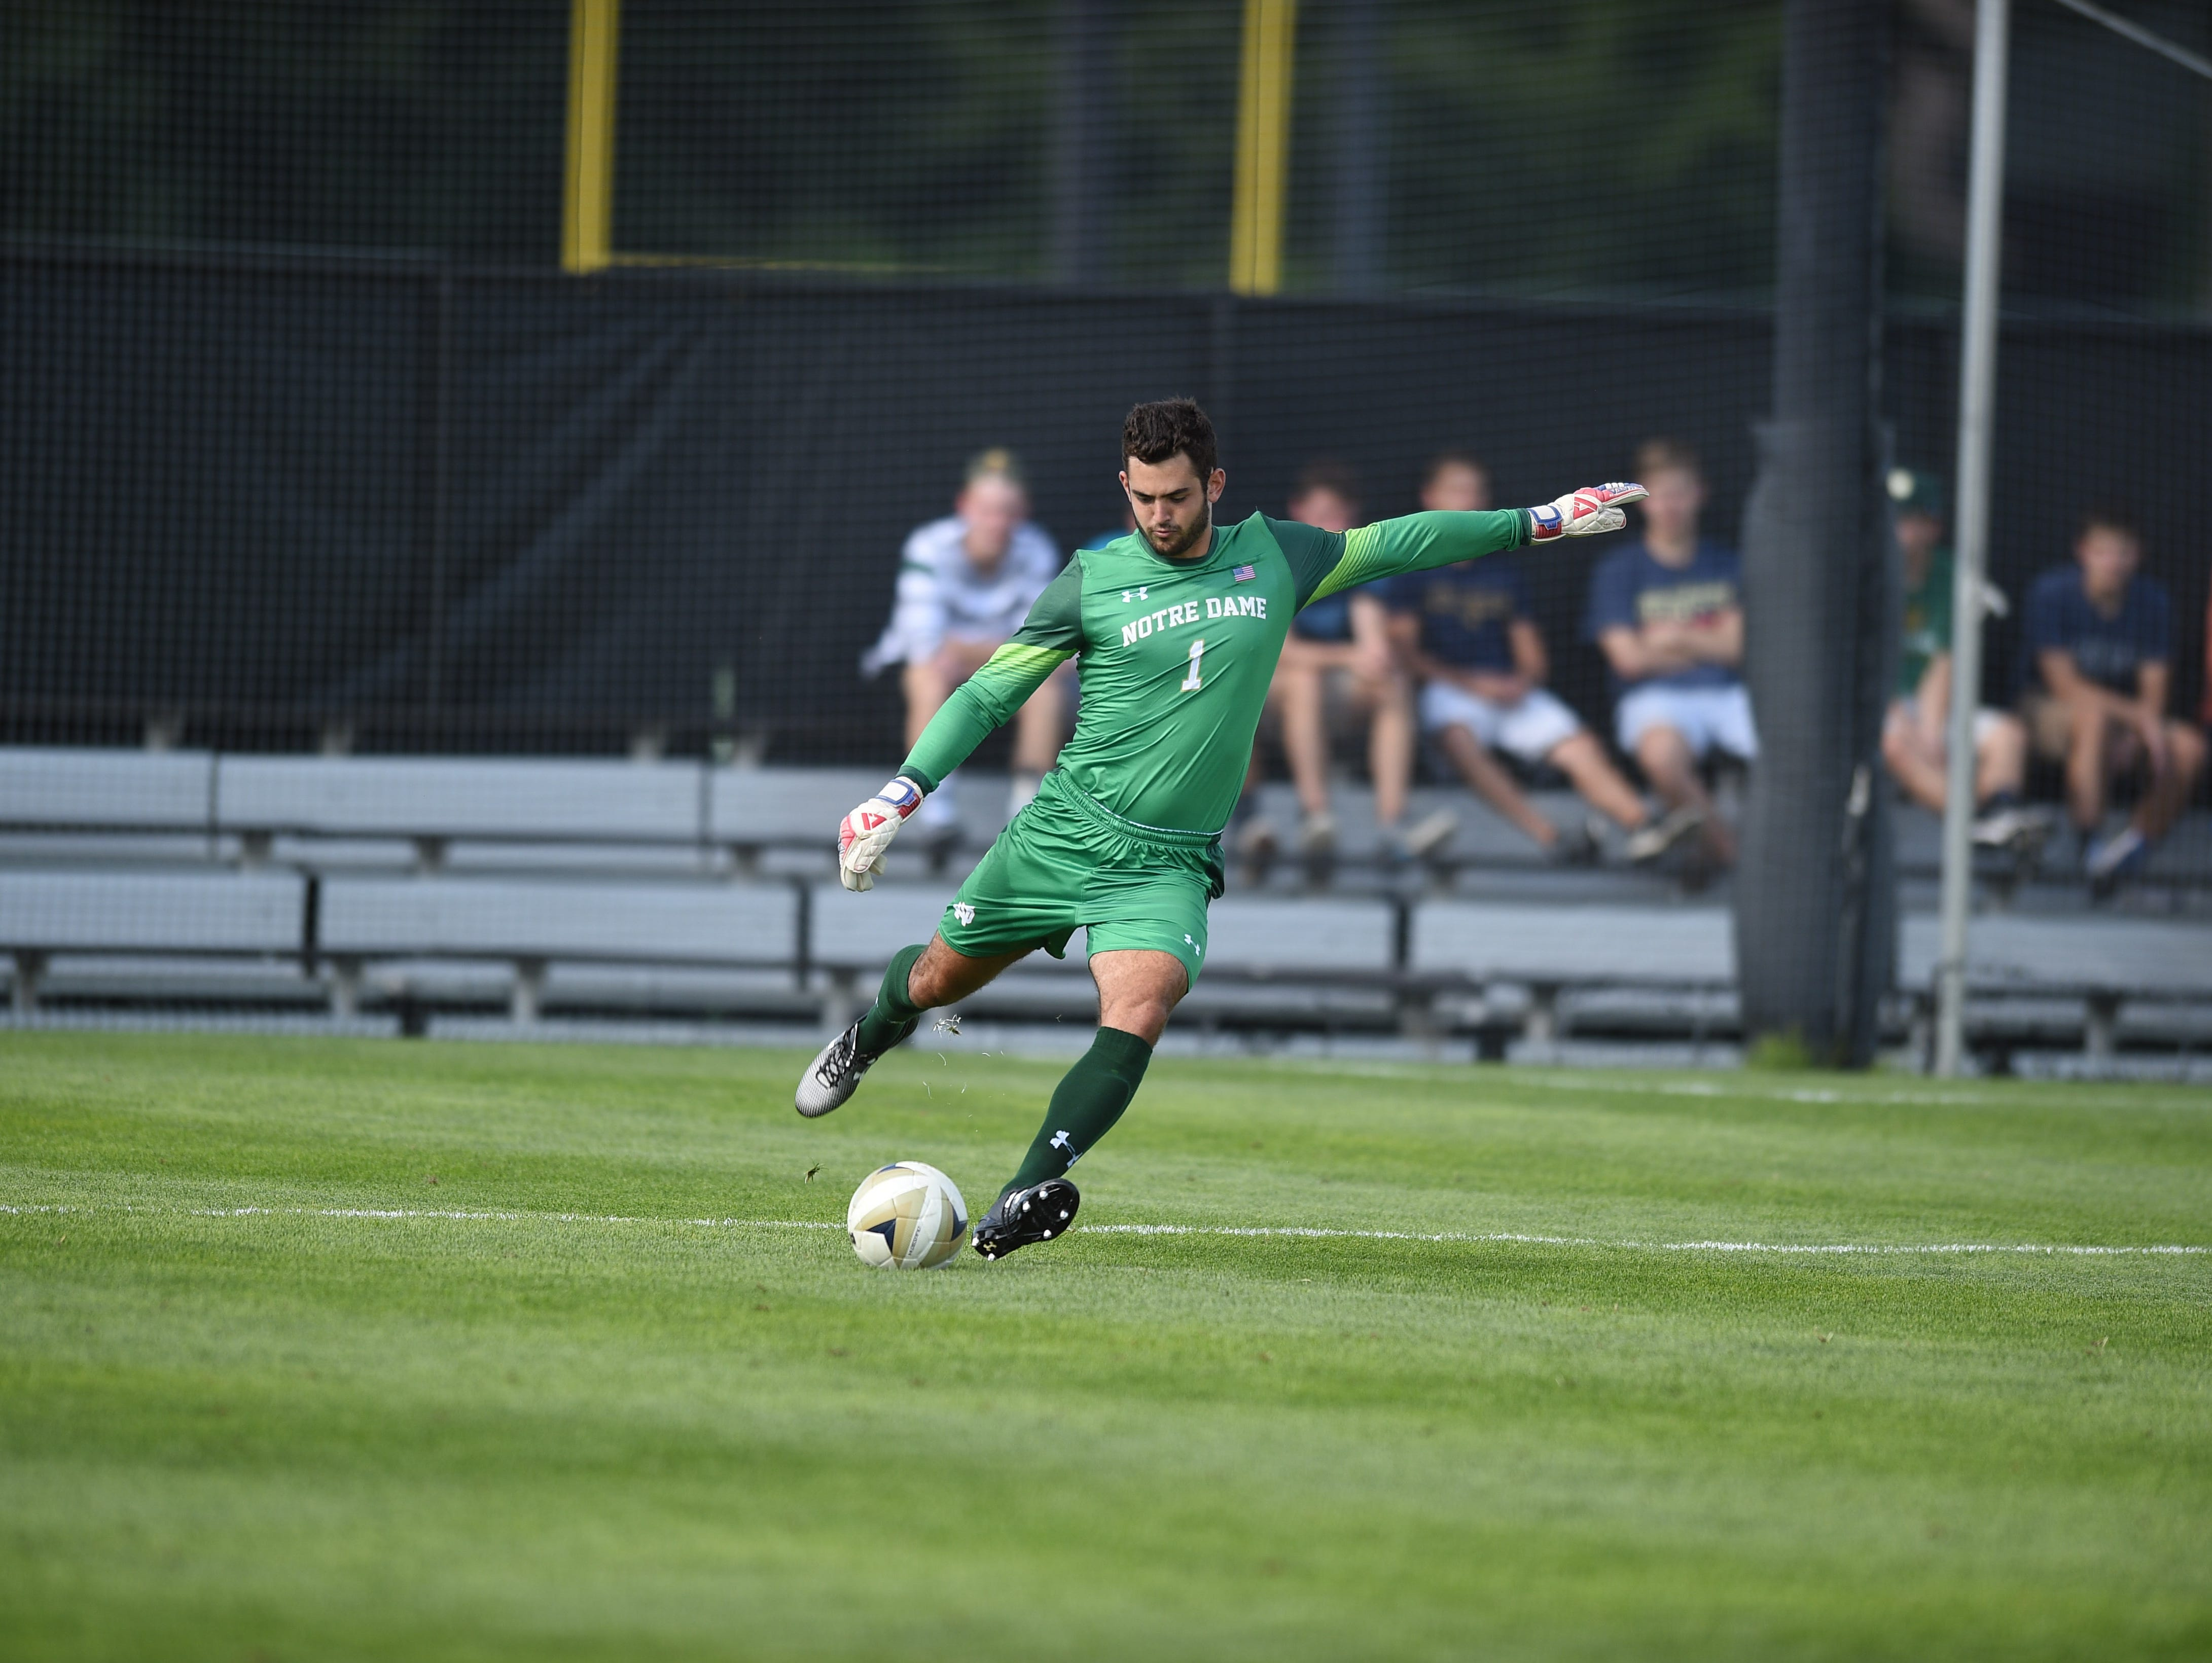 Top-ranked Notre Dame and its goalkeeper, Trinity graduate Chris Hubbard, visit Louisville on Friday.